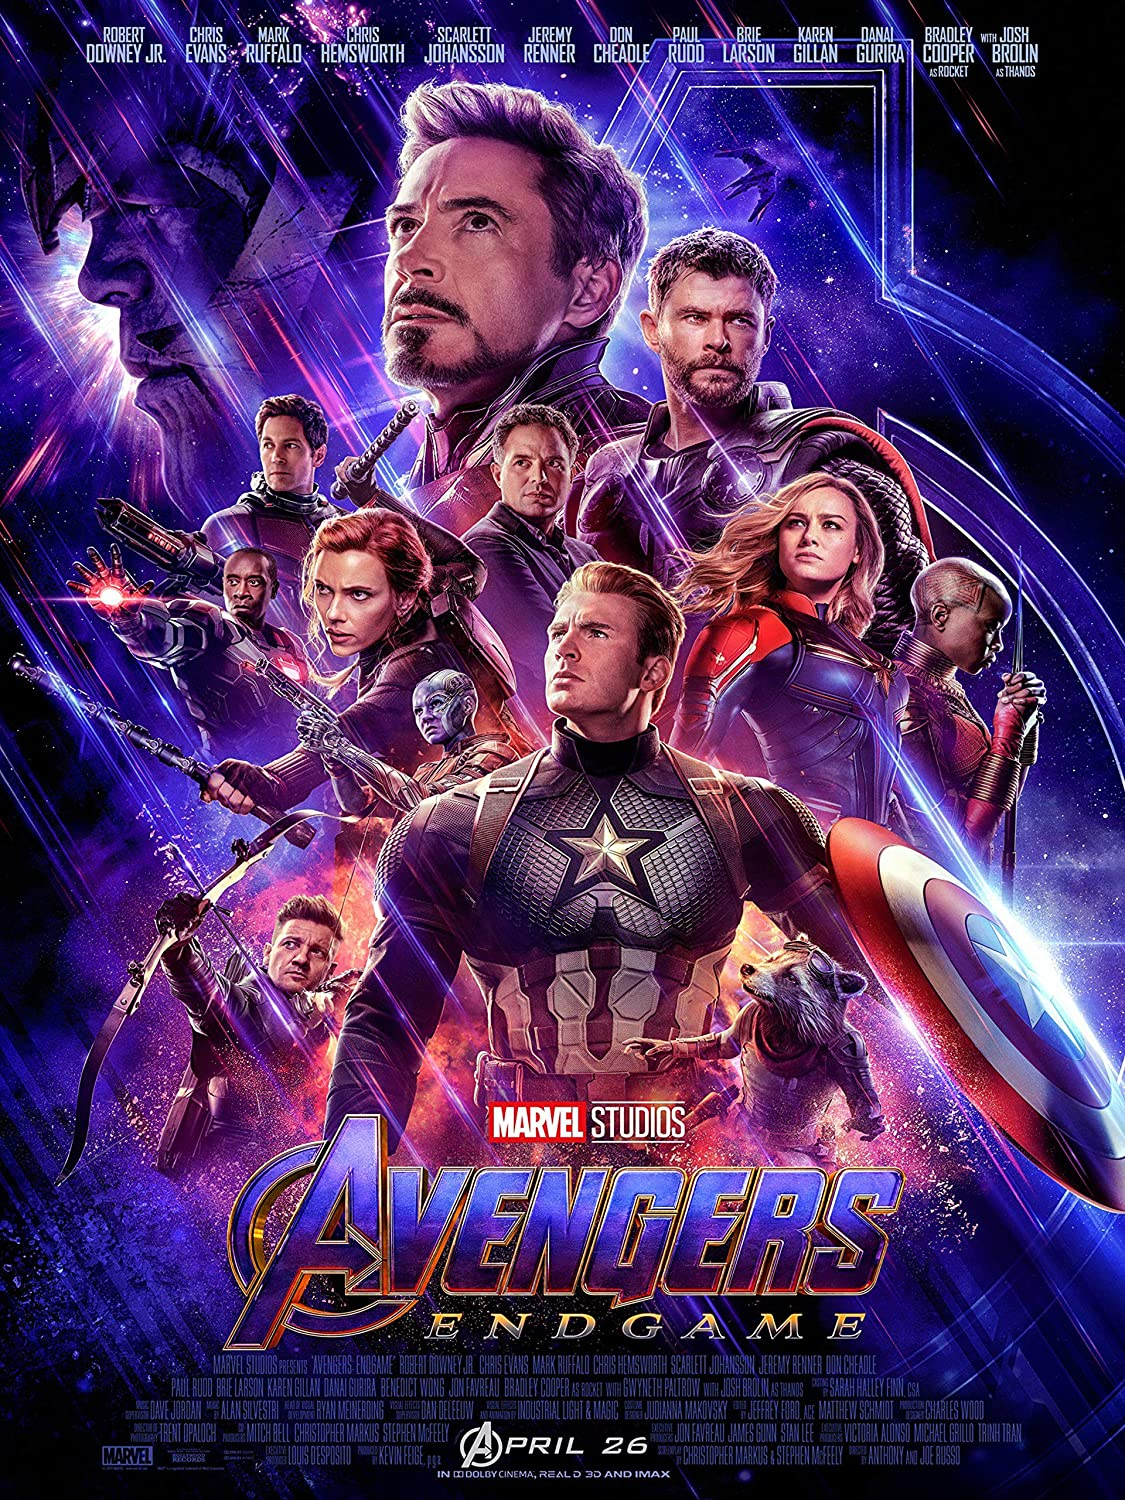 Avengers Endgame 2019 End Game Movie Poster Standard Size 18×24 inches